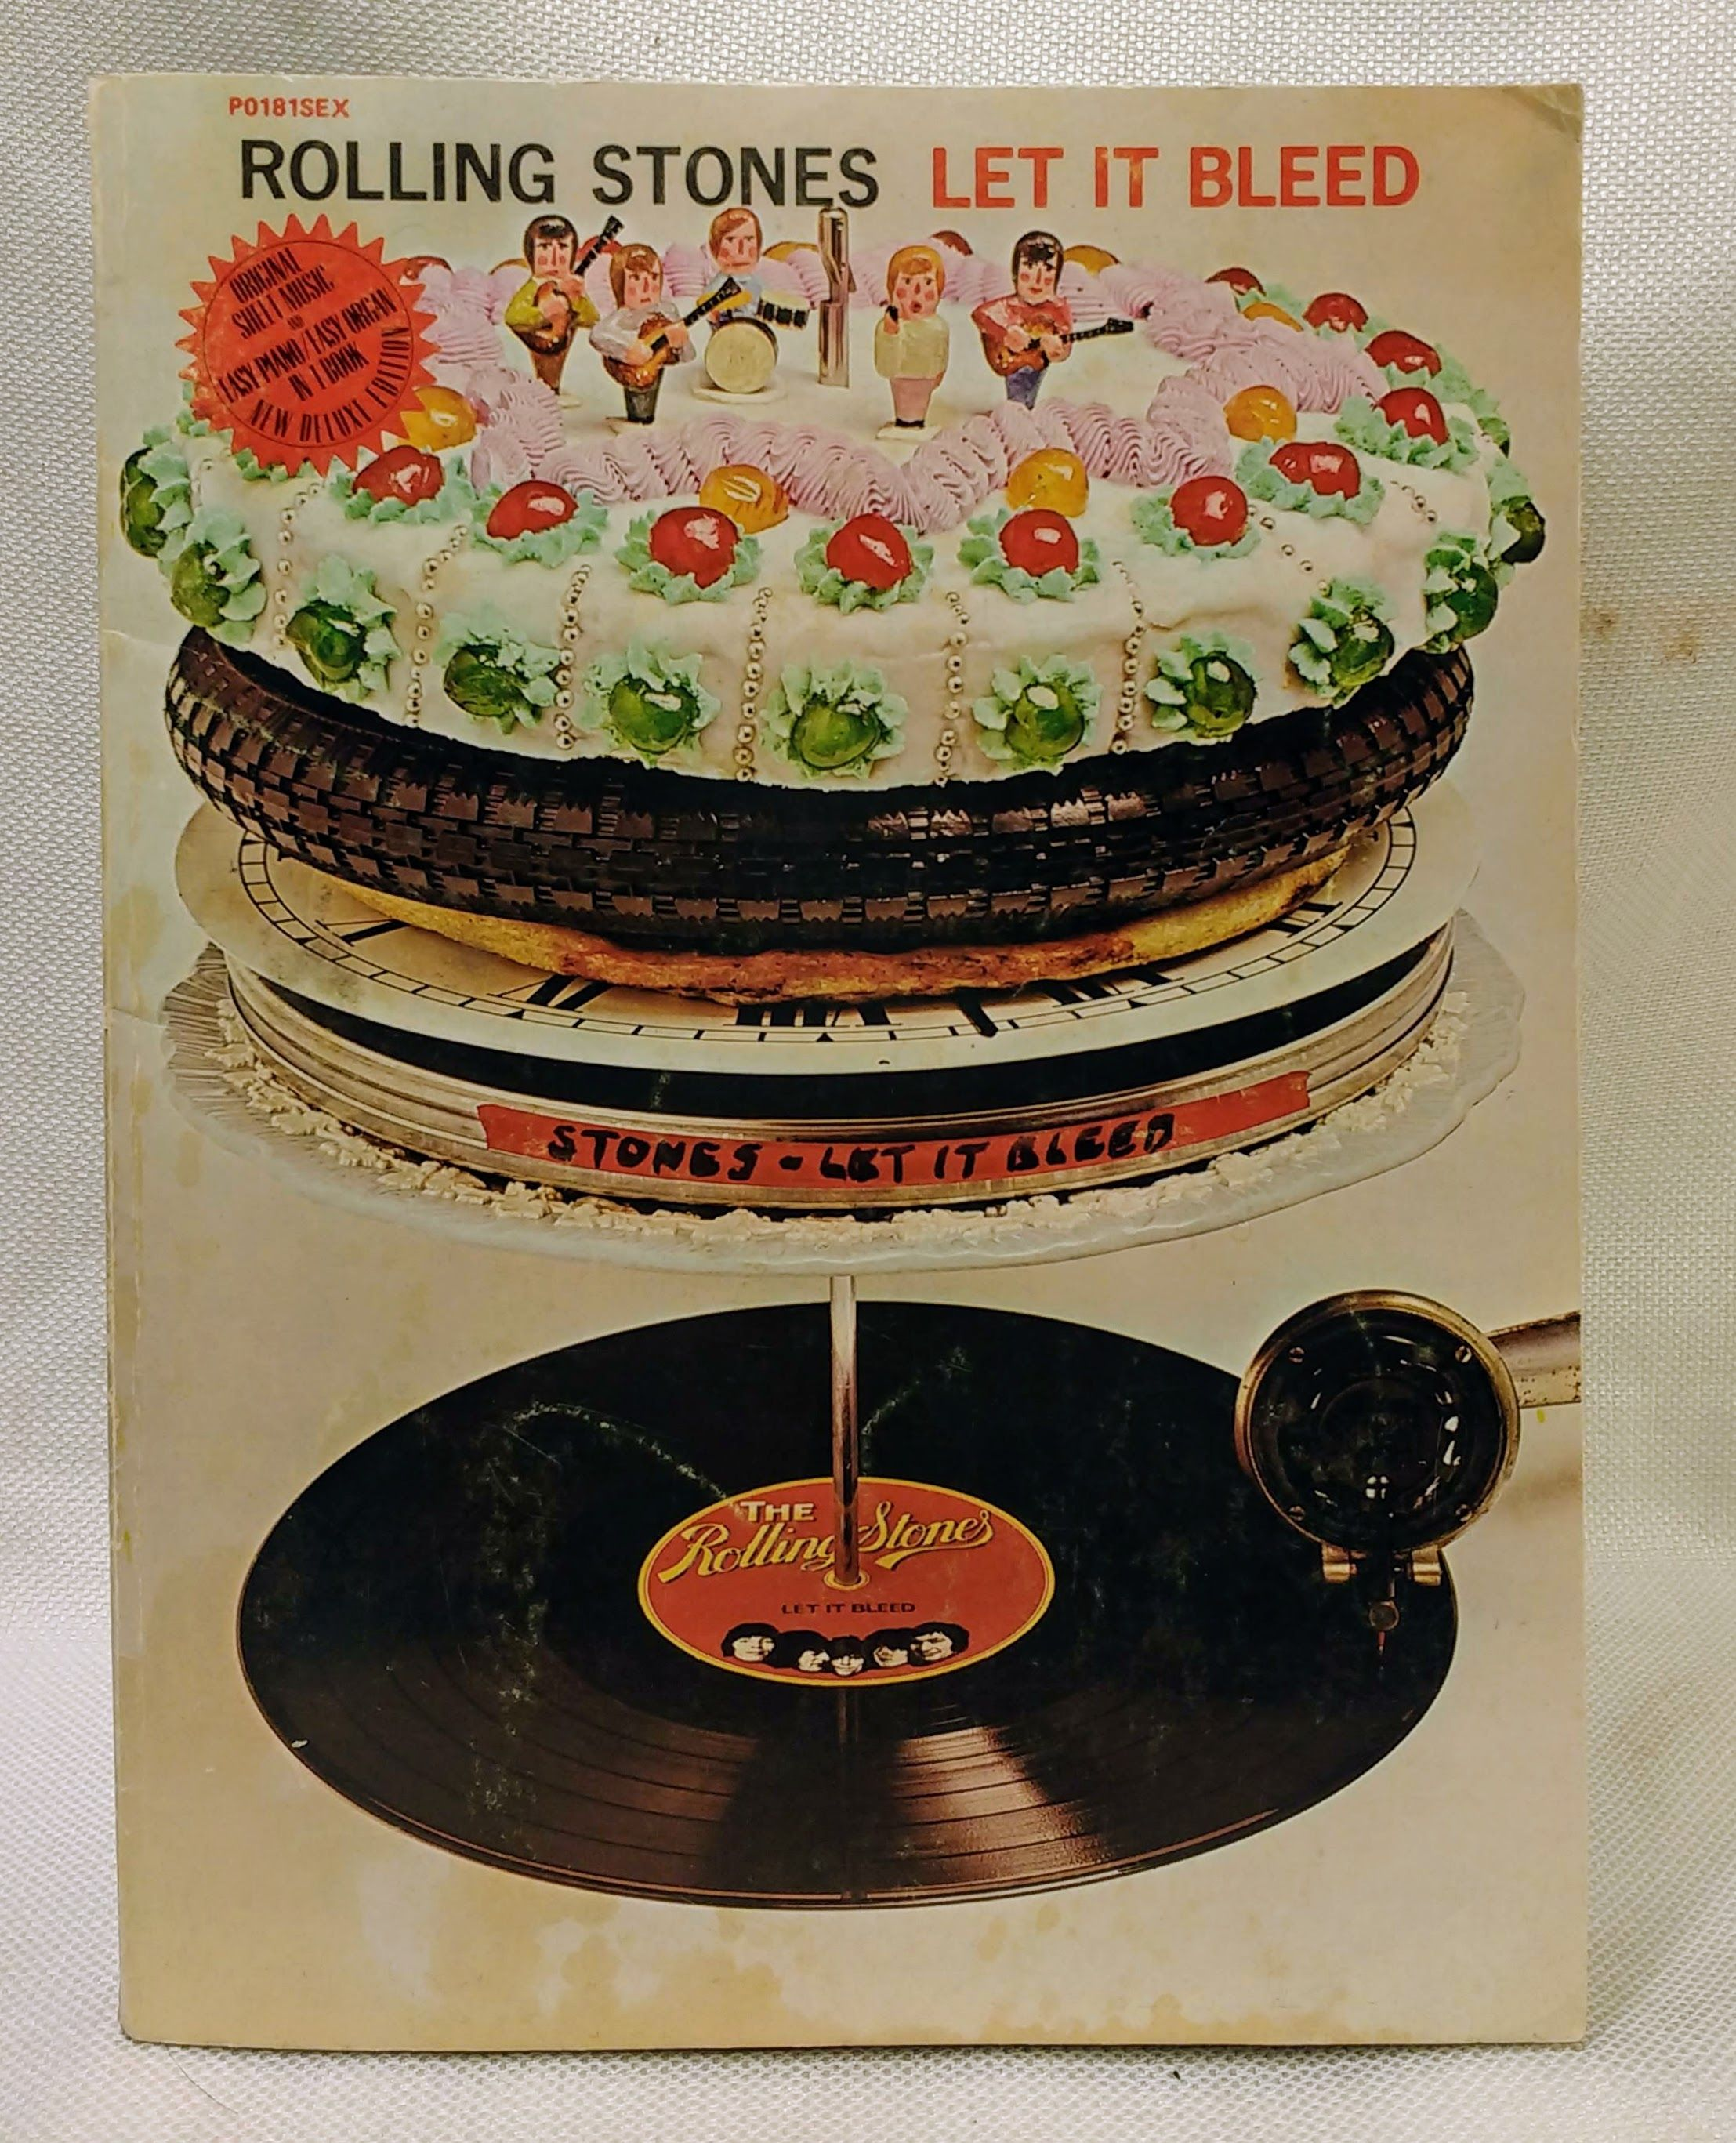 Let It Bleed: New Deluxe Edition, Rolling Stones